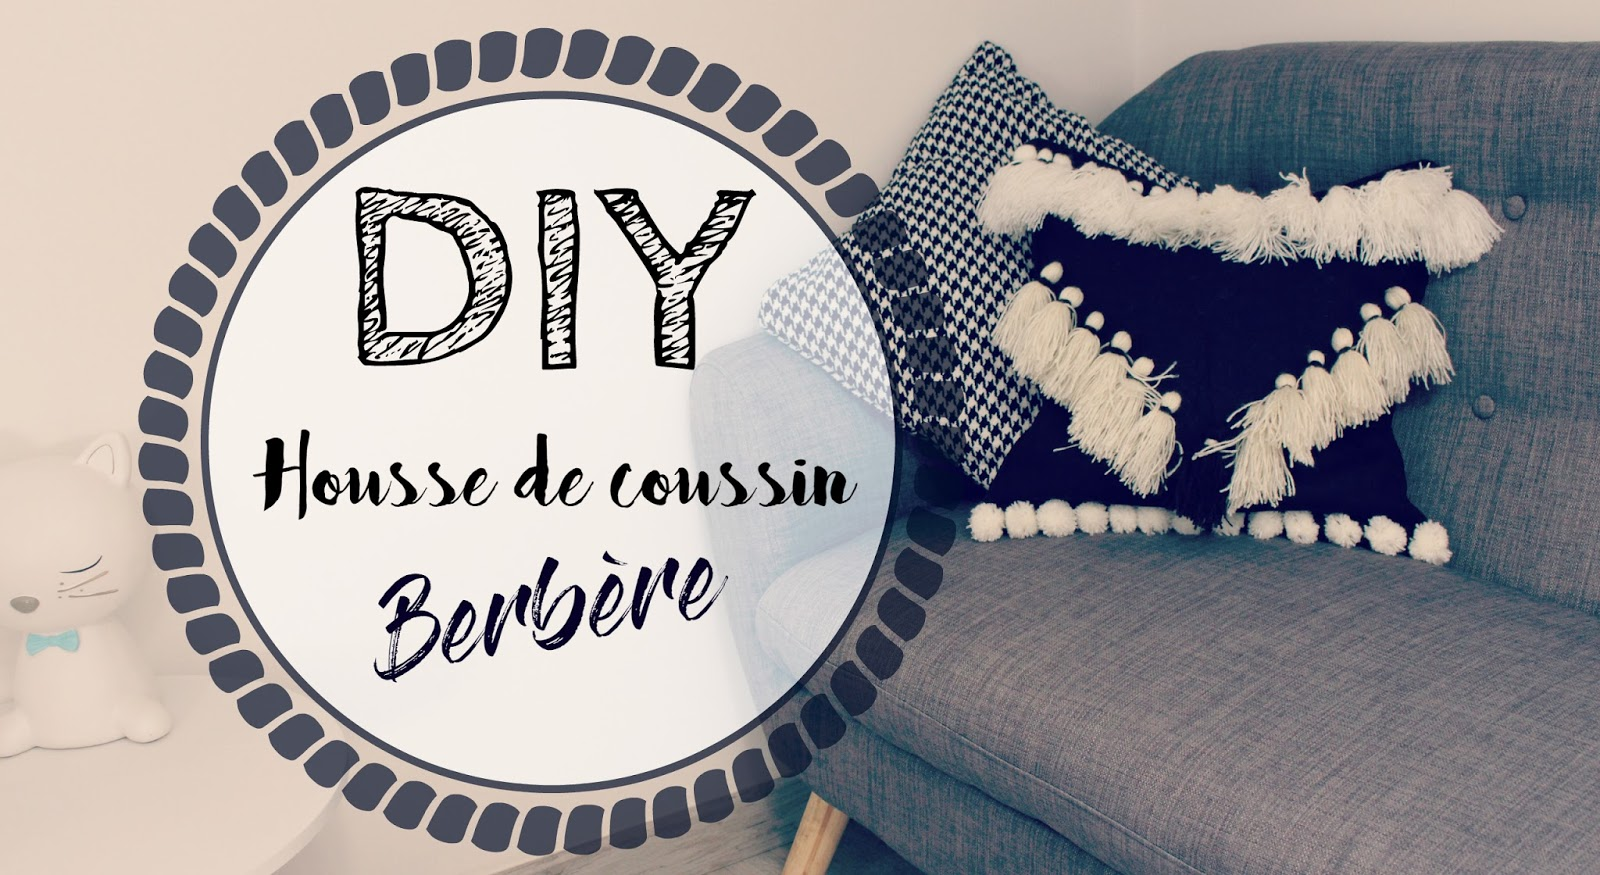 diy housse de coussin inspiration berb re la petite mumy. Black Bedroom Furniture Sets. Home Design Ideas